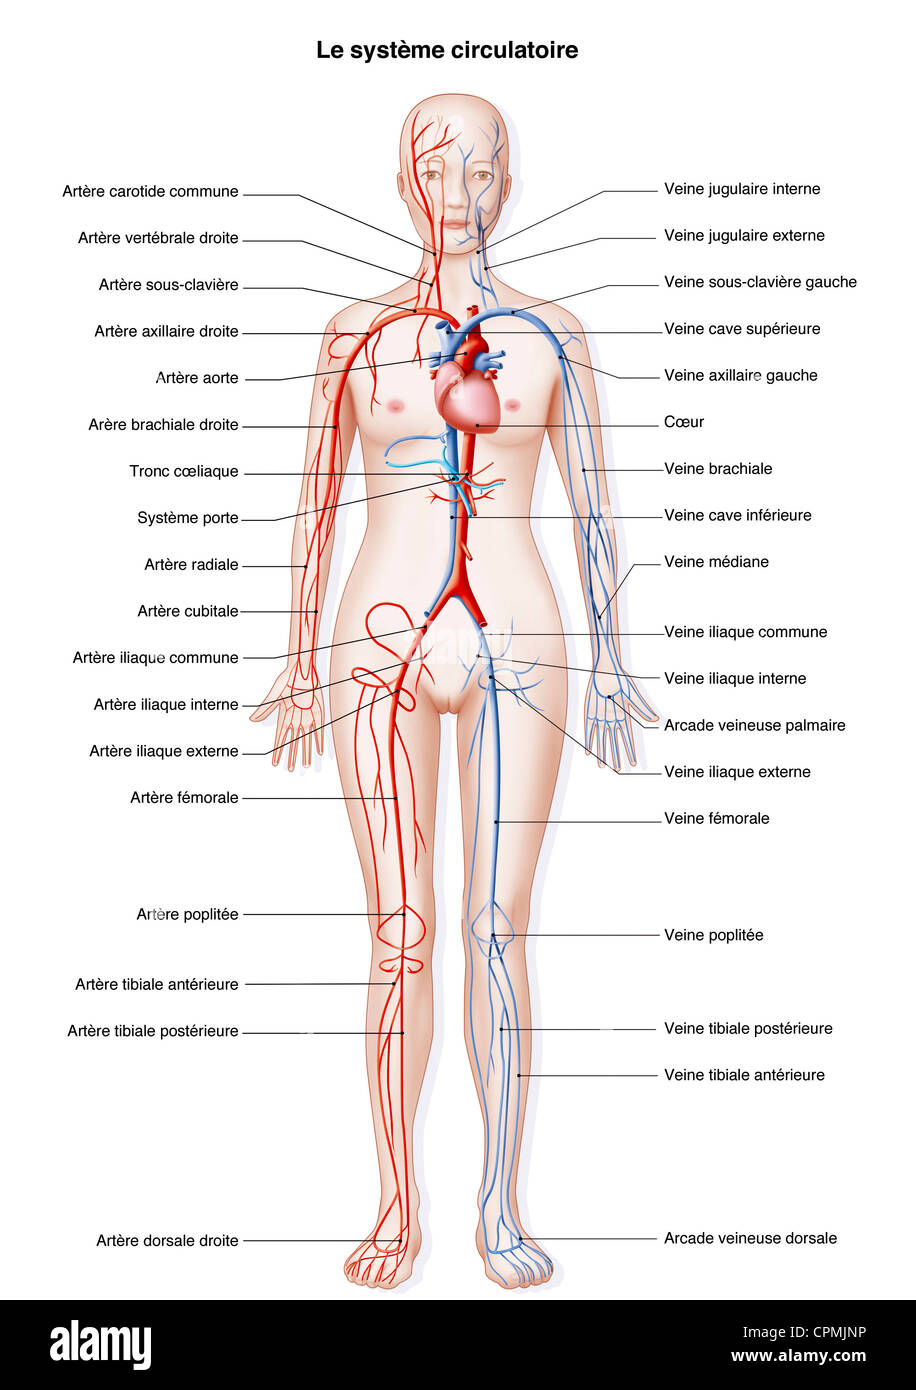 Circulation Of The Blood Stock Photos & Circulation Of The Blood ...